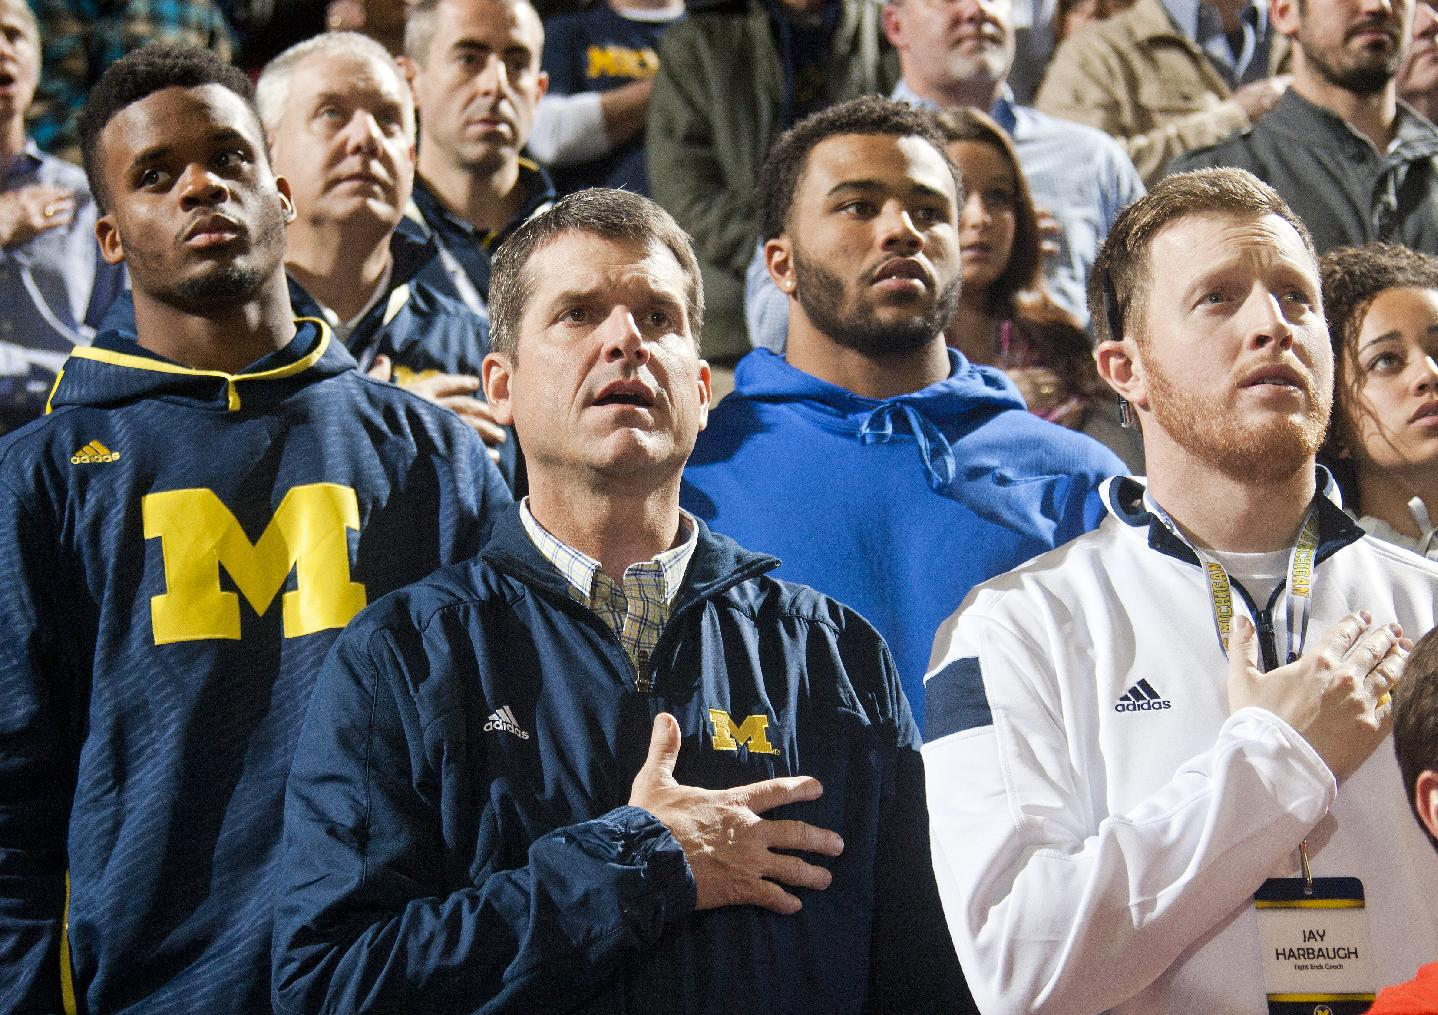 Michigan football head coach Jim Harbaugh, center, stands for the national anthem with son Jay, right, and recruits, before an NCAA college basketball game against Northwestern at Crisler Center in Ann Arbor, Mich., Saturday, Jan. 17, 2015. (AP Photo/Tony Ding)